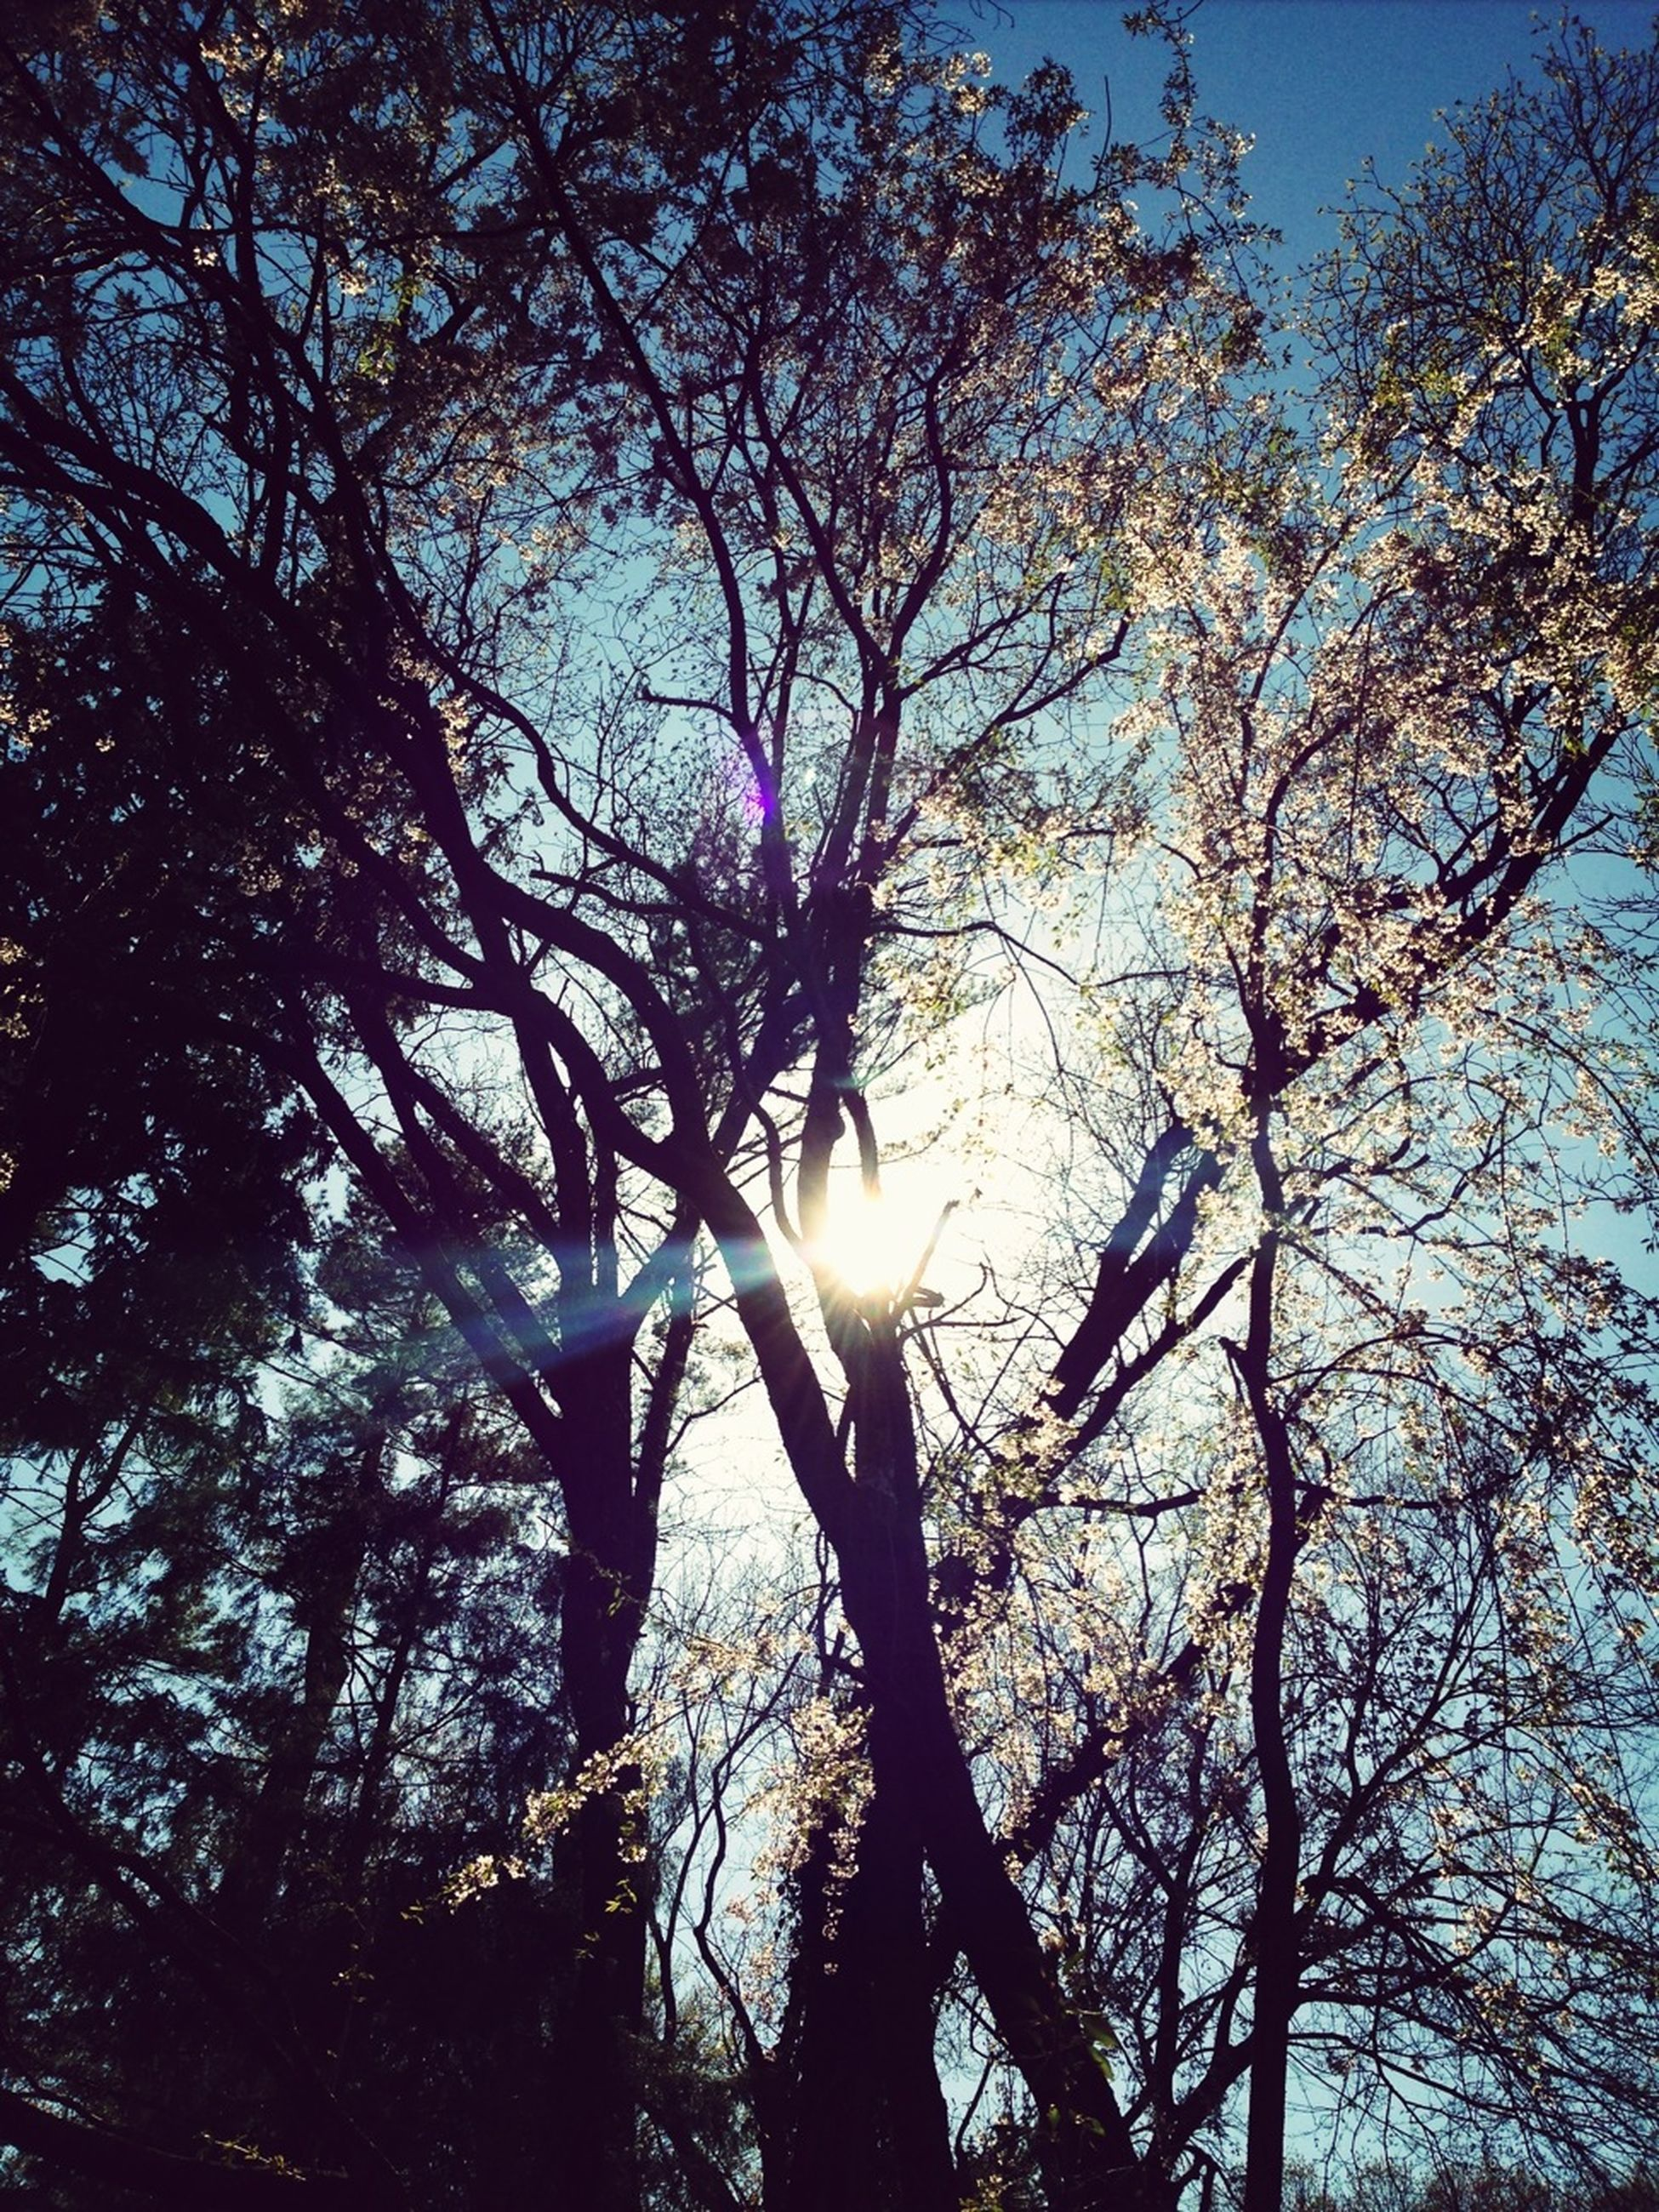 tree, branch, sun, low angle view, bare tree, silhouette, nature, beauty in nature, tranquility, growth, sunlight, sky, tree trunk, sunbeam, back lit, scenics, lens flare, tranquil scene, outdoors, no people